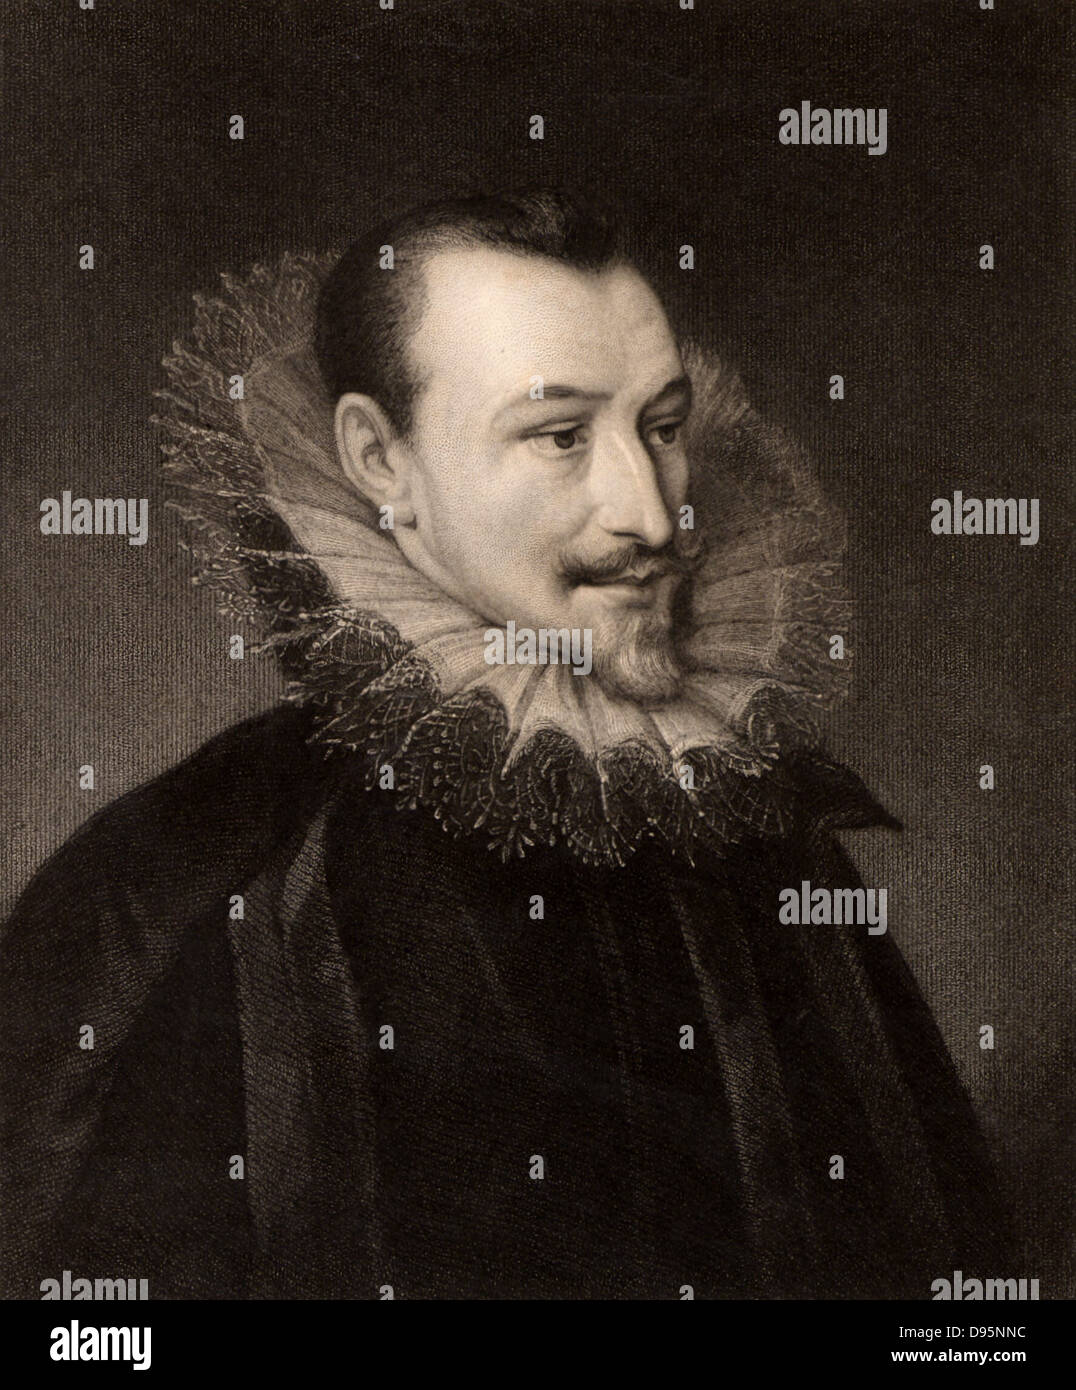 Edmund Spenser (1552?-1599) English Elizabethan poet.  Engraving from 'The Gallery of Portraits' Vol. IV, - Stock Image